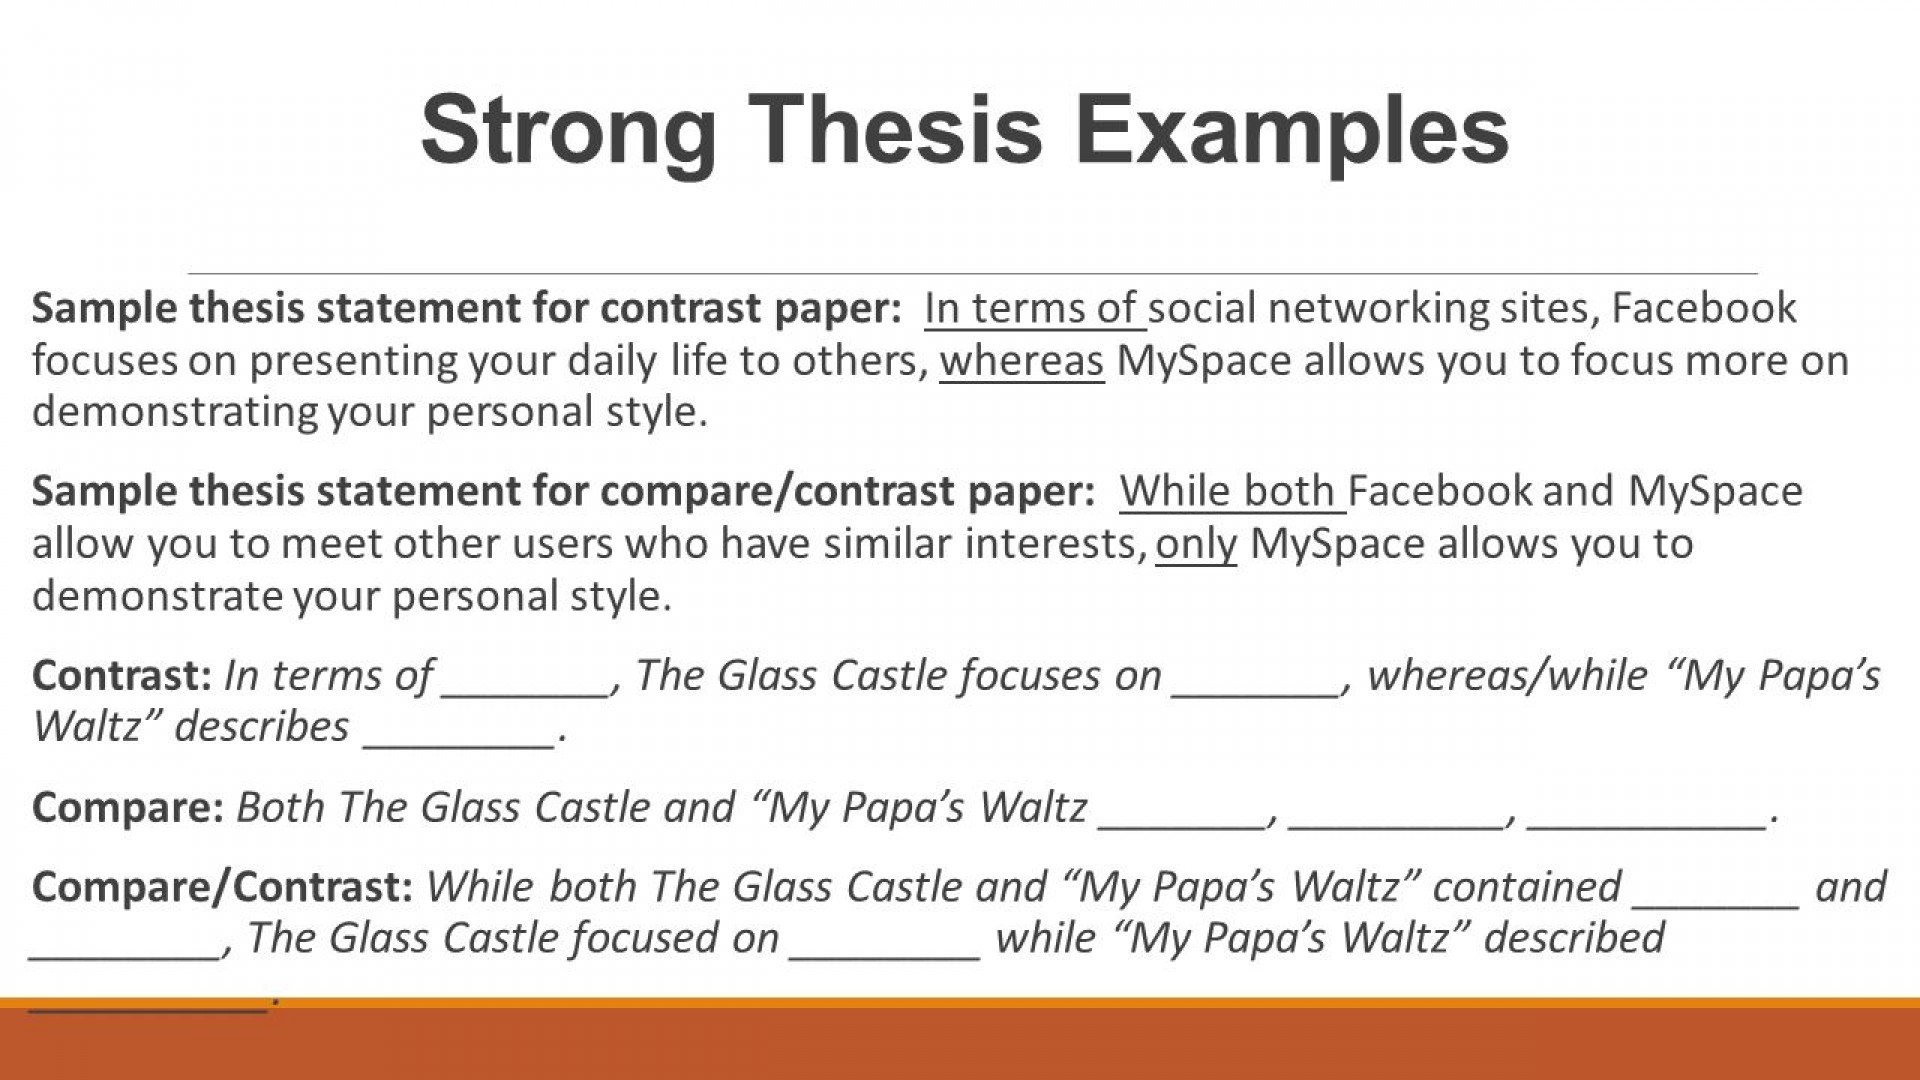 002 Essay Example Compare And Contrast Thesis Sample Paper Comparecontrast Statement For Argumentative On Social Media Remarkable Examples Template 1920